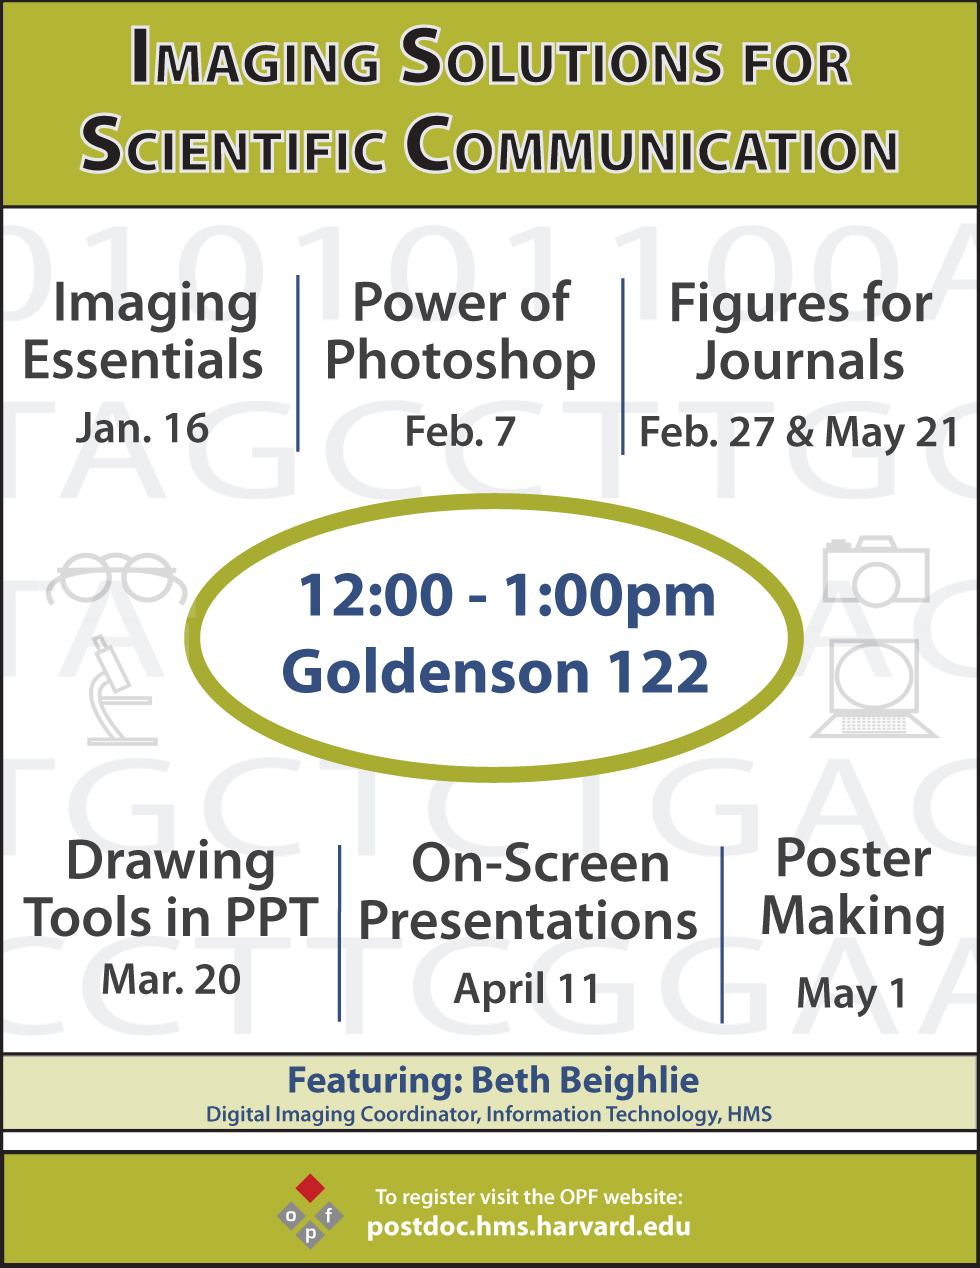 Imaging Solutions for Scientific Communication: Drawing Tools and